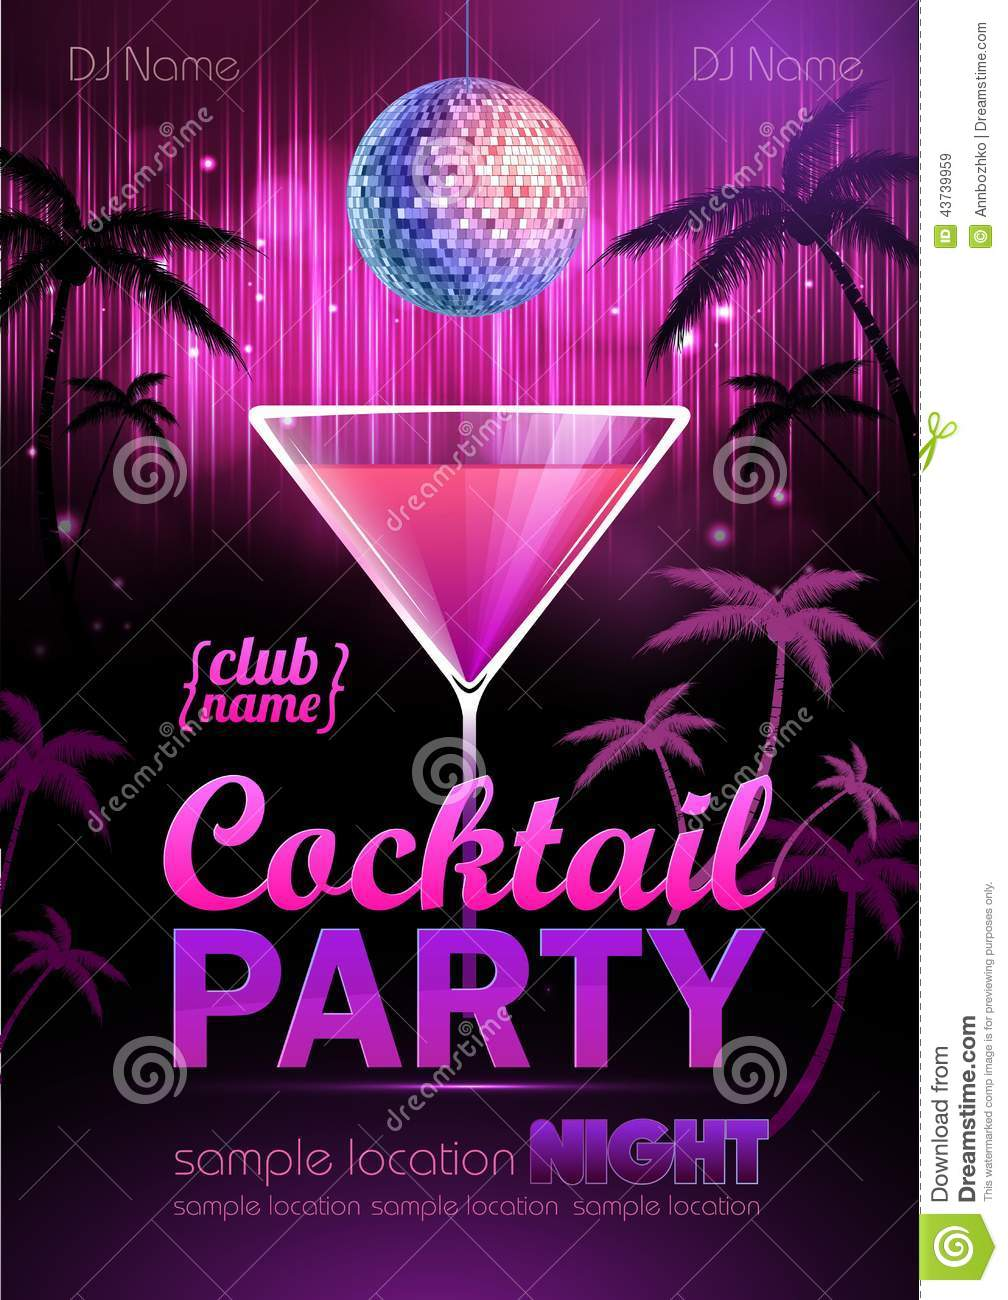 cocktail party poster stock vector image of audio party 43739959. Black Bedroom Furniture Sets. Home Design Ideas